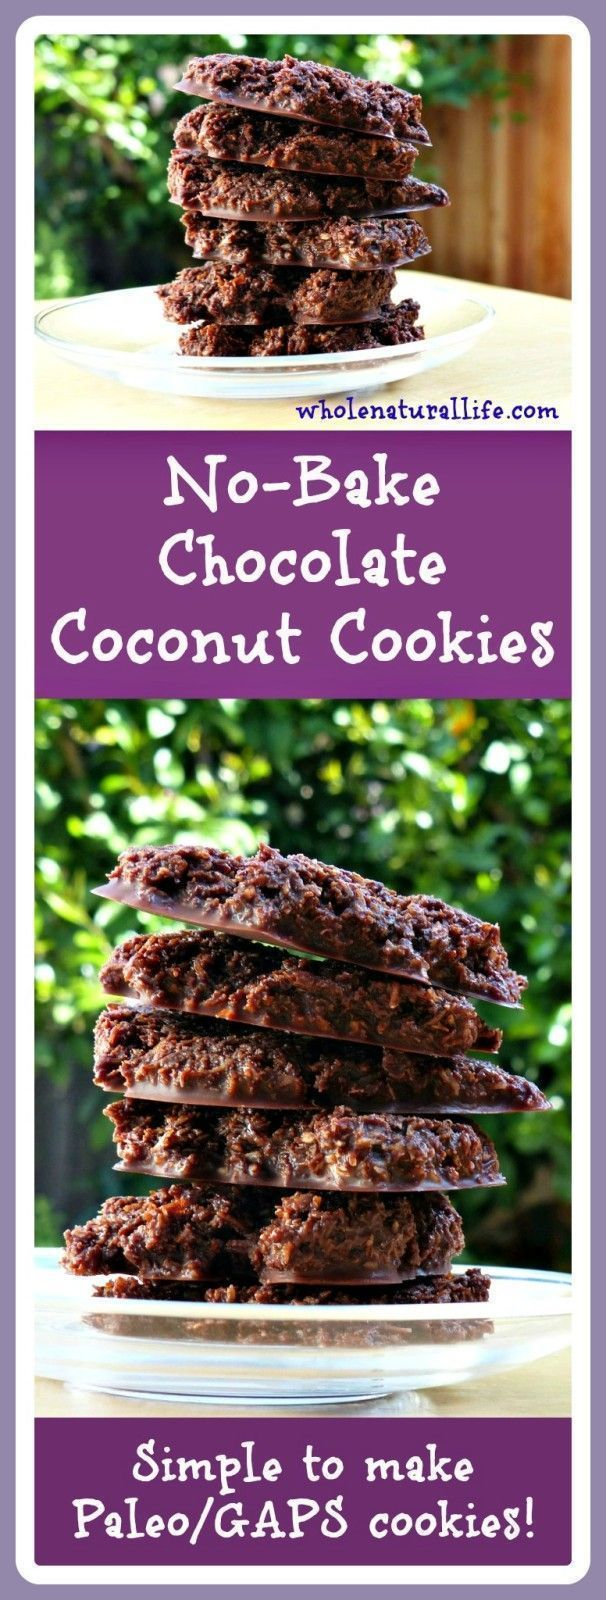 These no-bake chocolate coconut cookies are honey-sweetened and suitable for the GAPS and Paleo diets. Try these easy freezer cookies today!